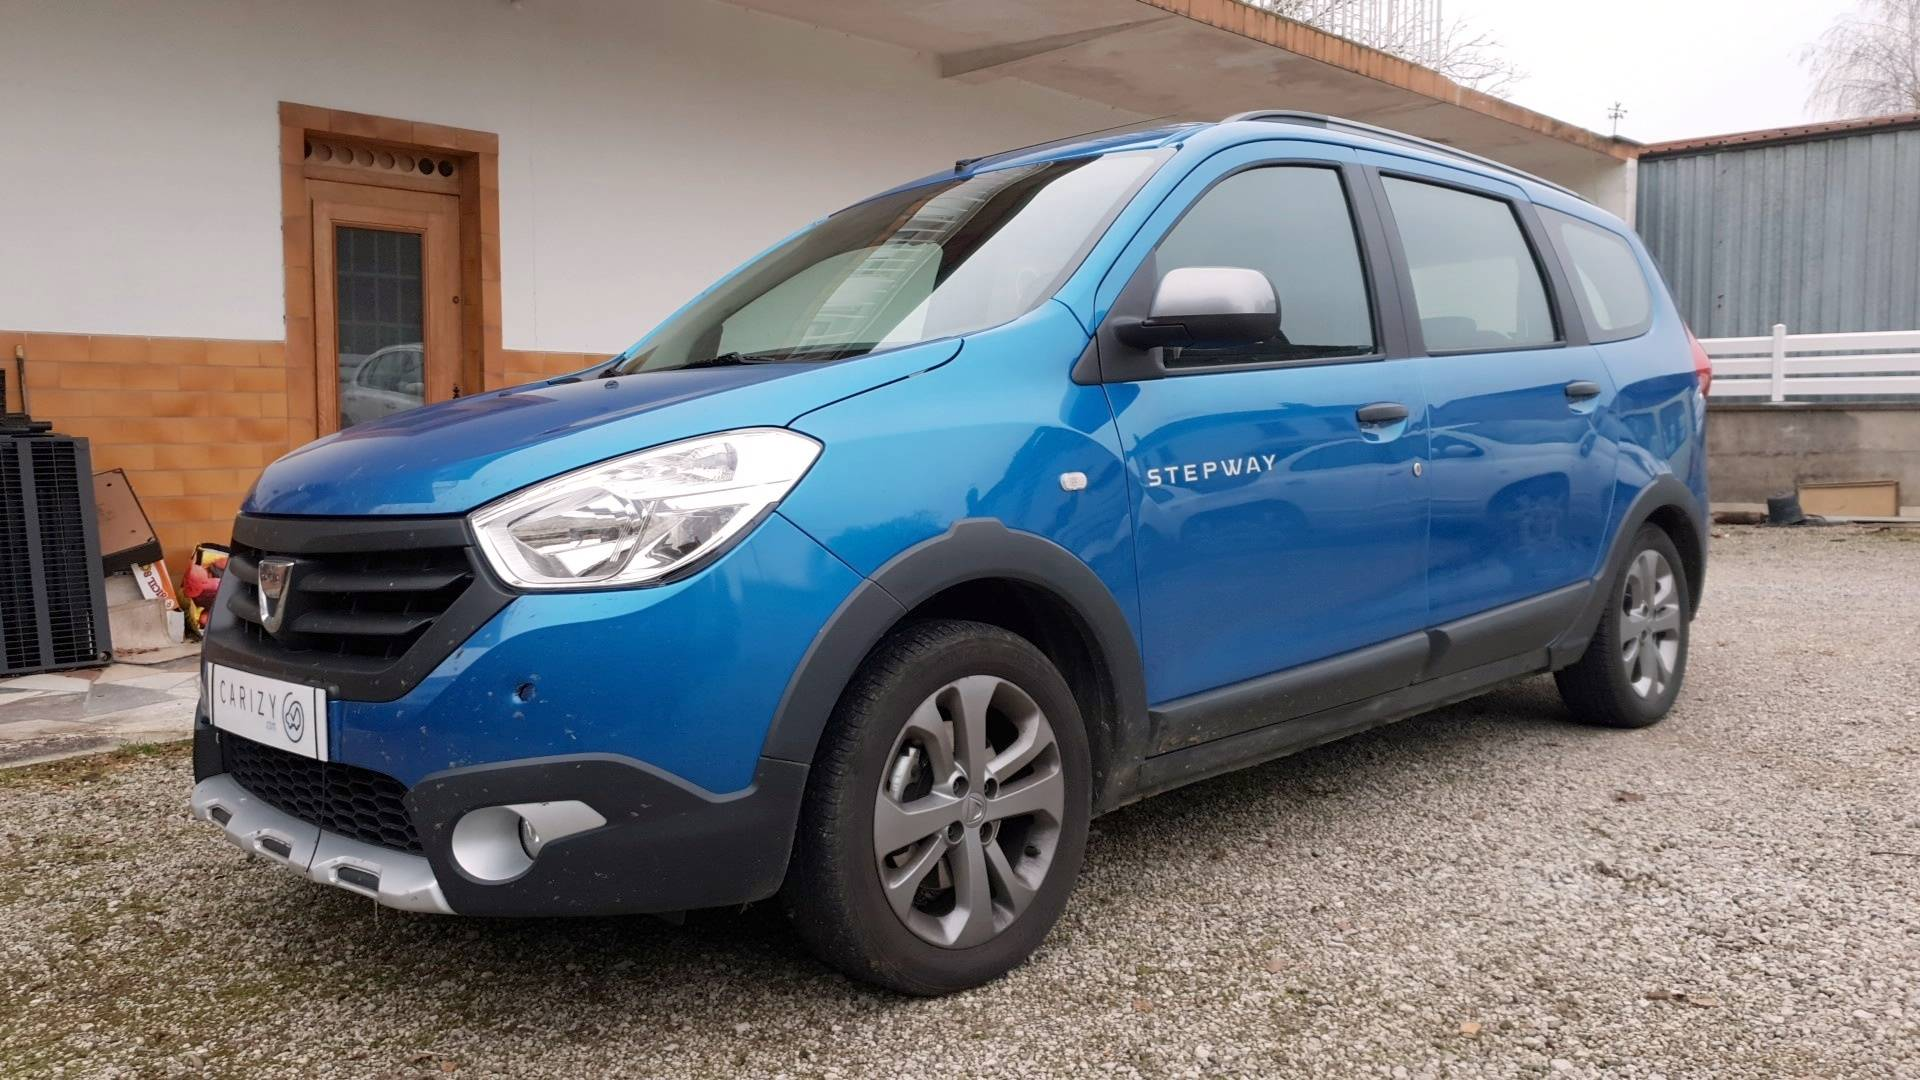 dacia lodgy d u0026 39 occasion stepway 1 2 tce 115 courlan